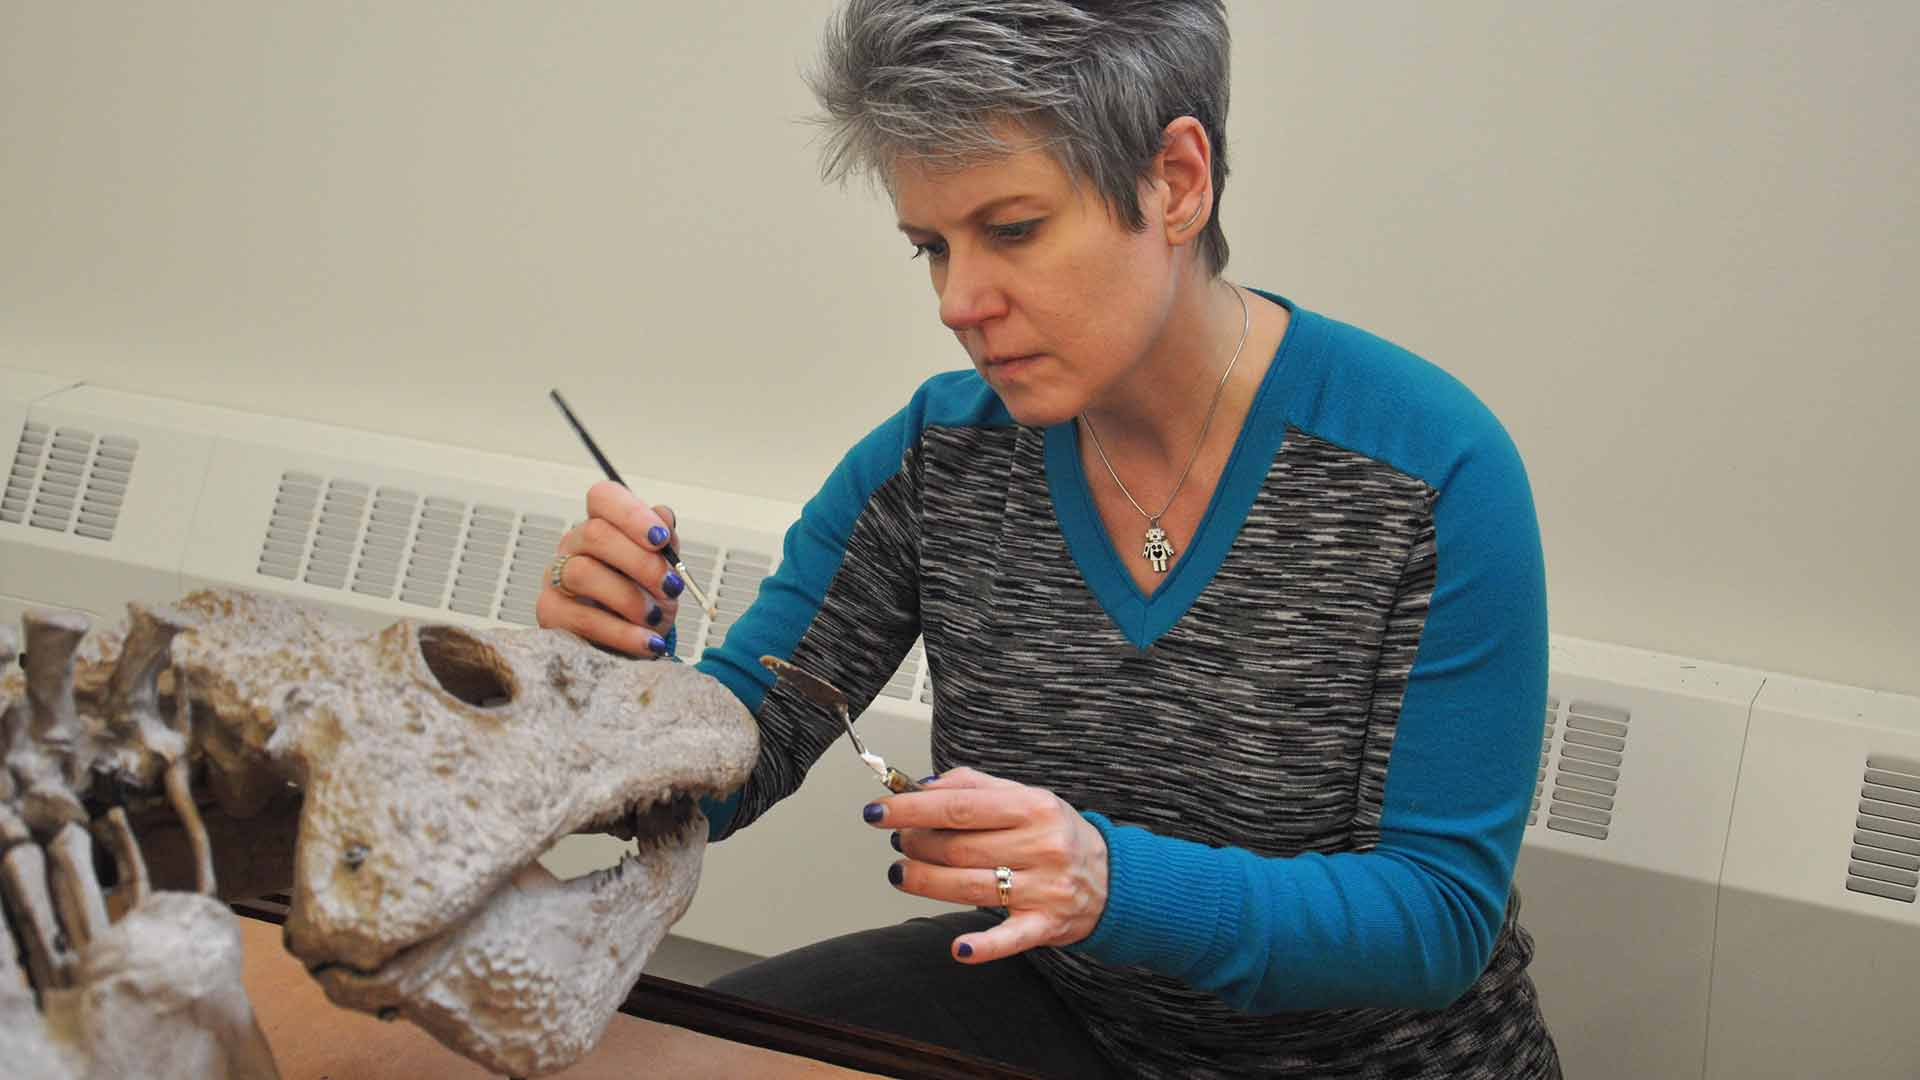 A woman uses a paintbrush to restore a part of the nose section of the skull of the object.